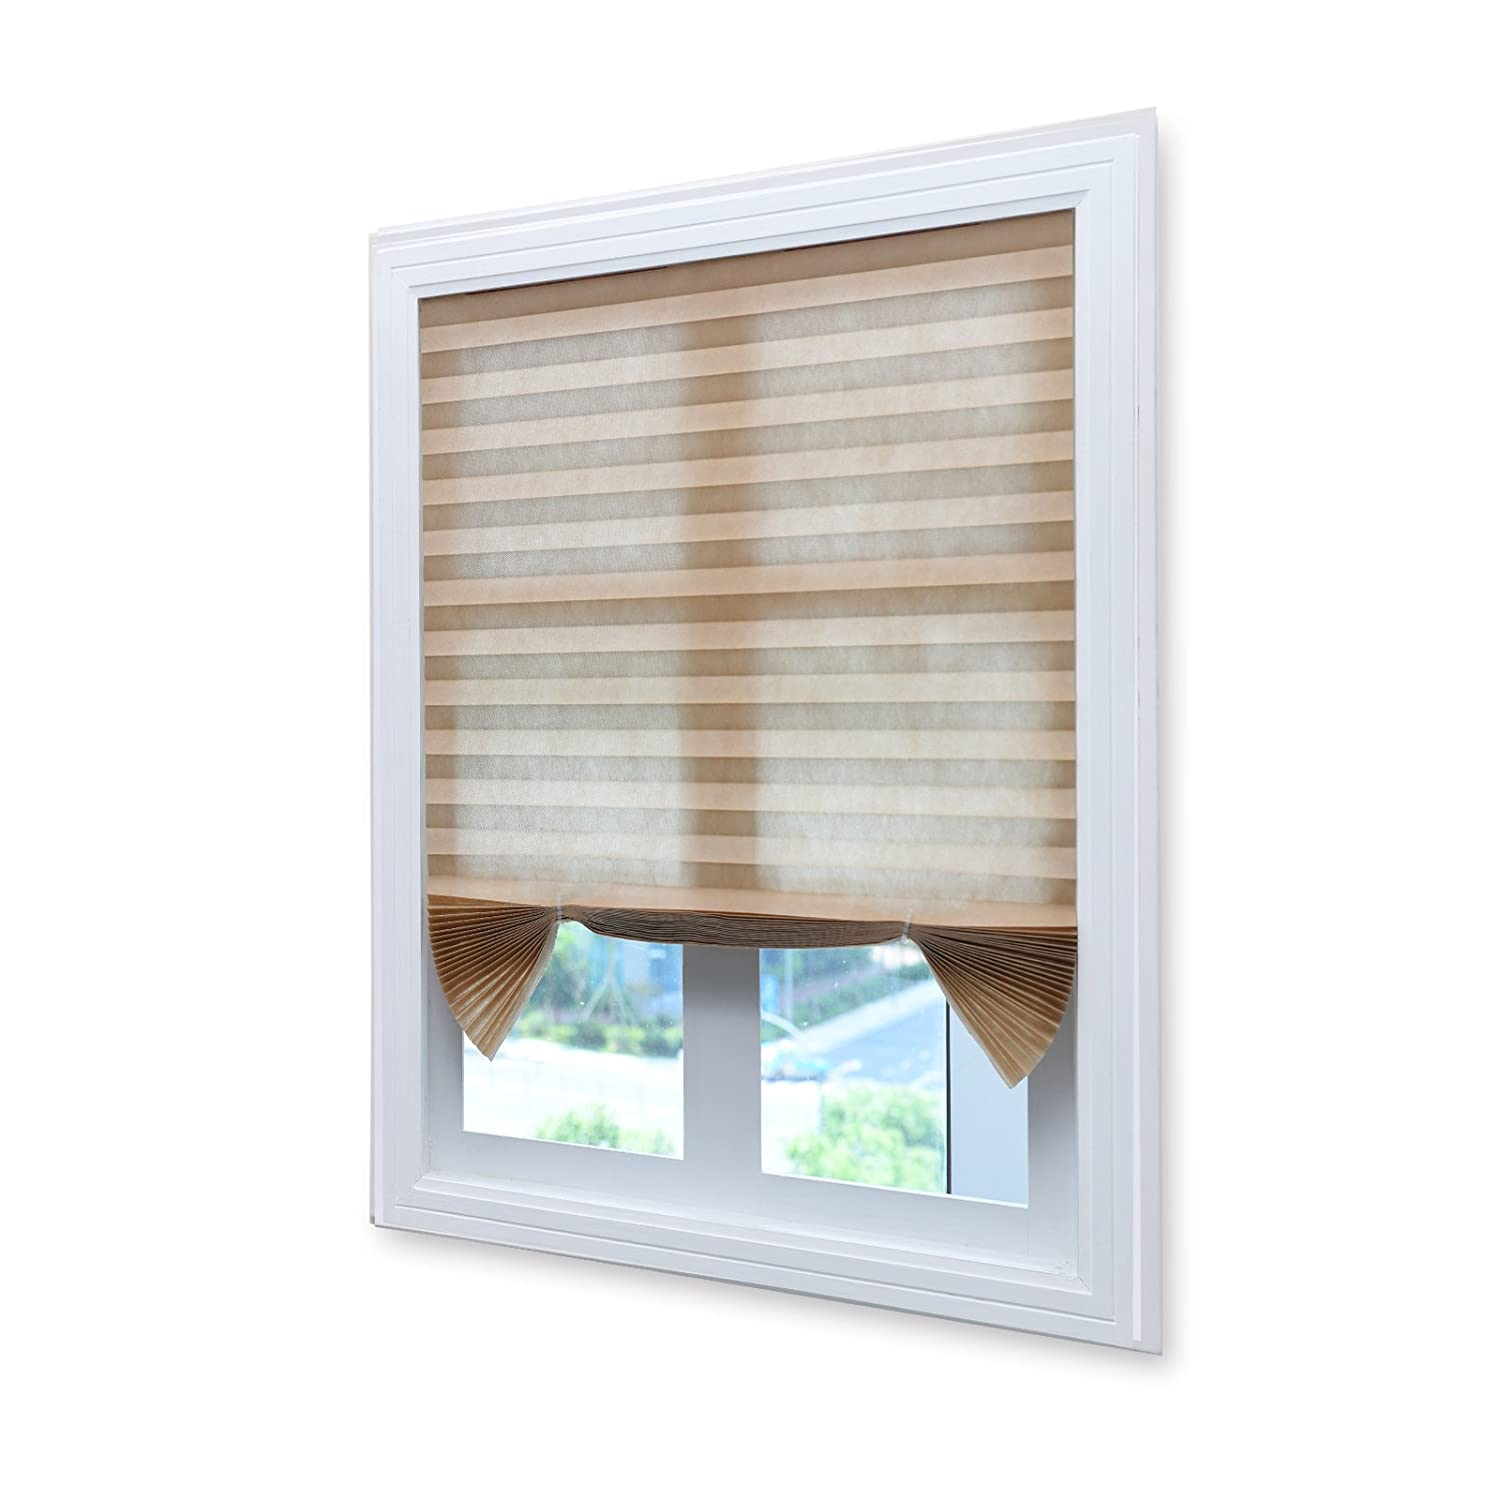 Acholo Easy to Install Pleated Fabric Shades Blinds Room Darkening Window Shades Blinds White 36x 72 6-Pack